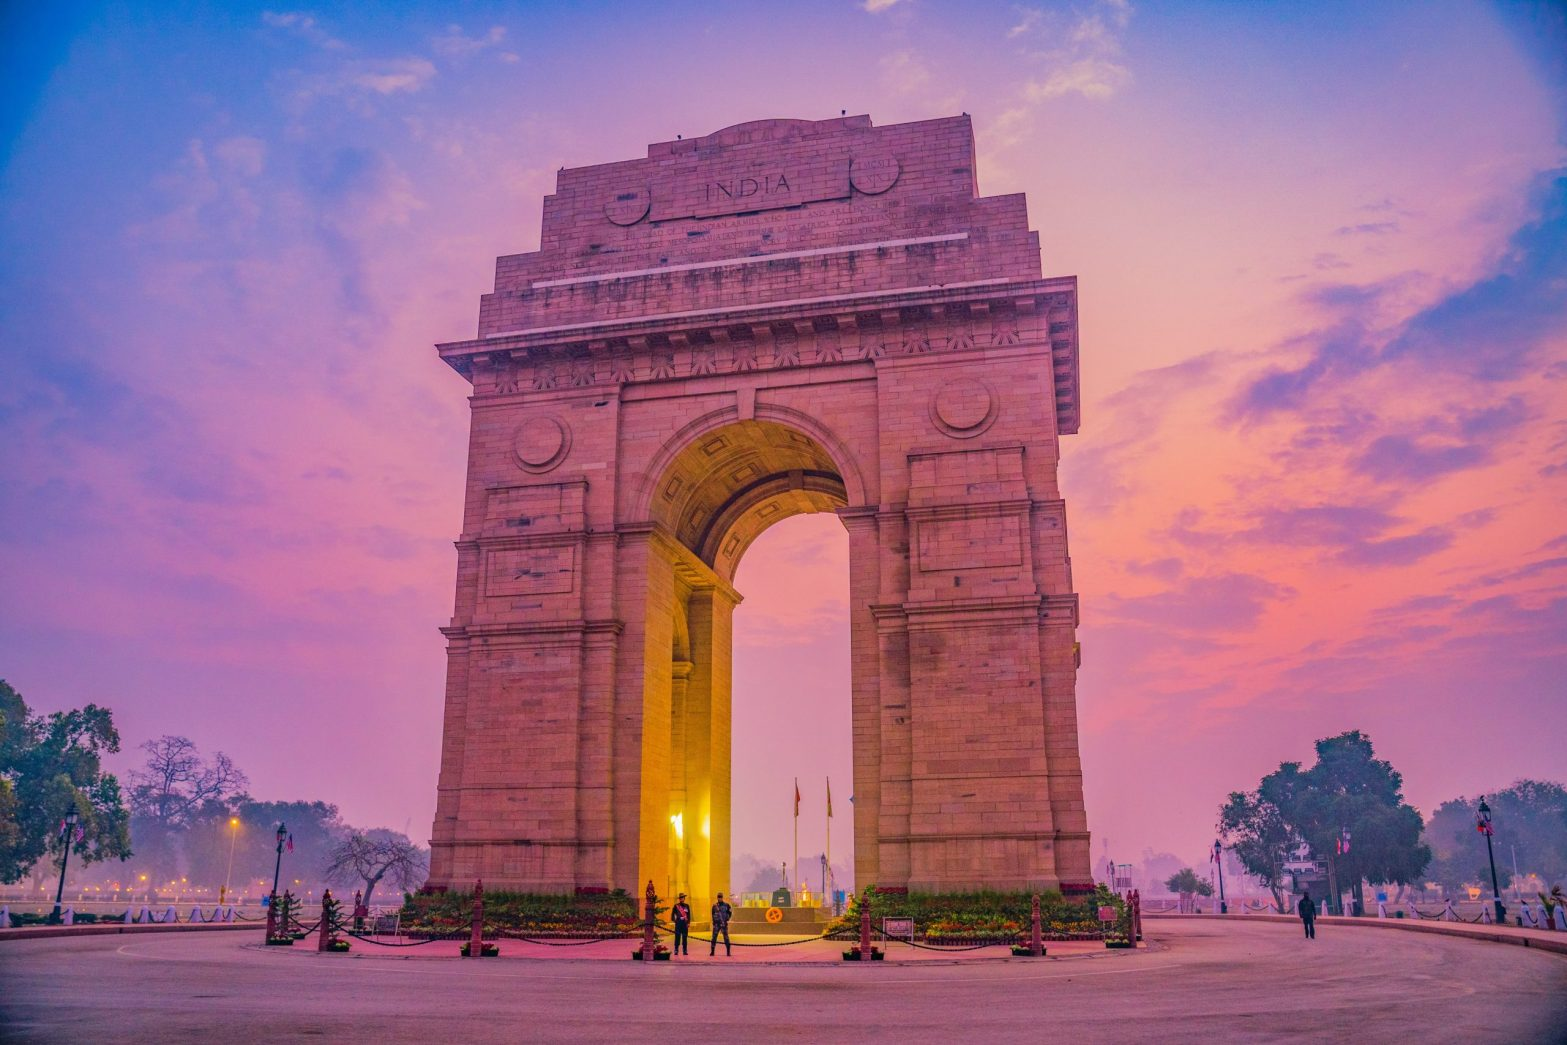 India Gate early in the morning, in New Delhi